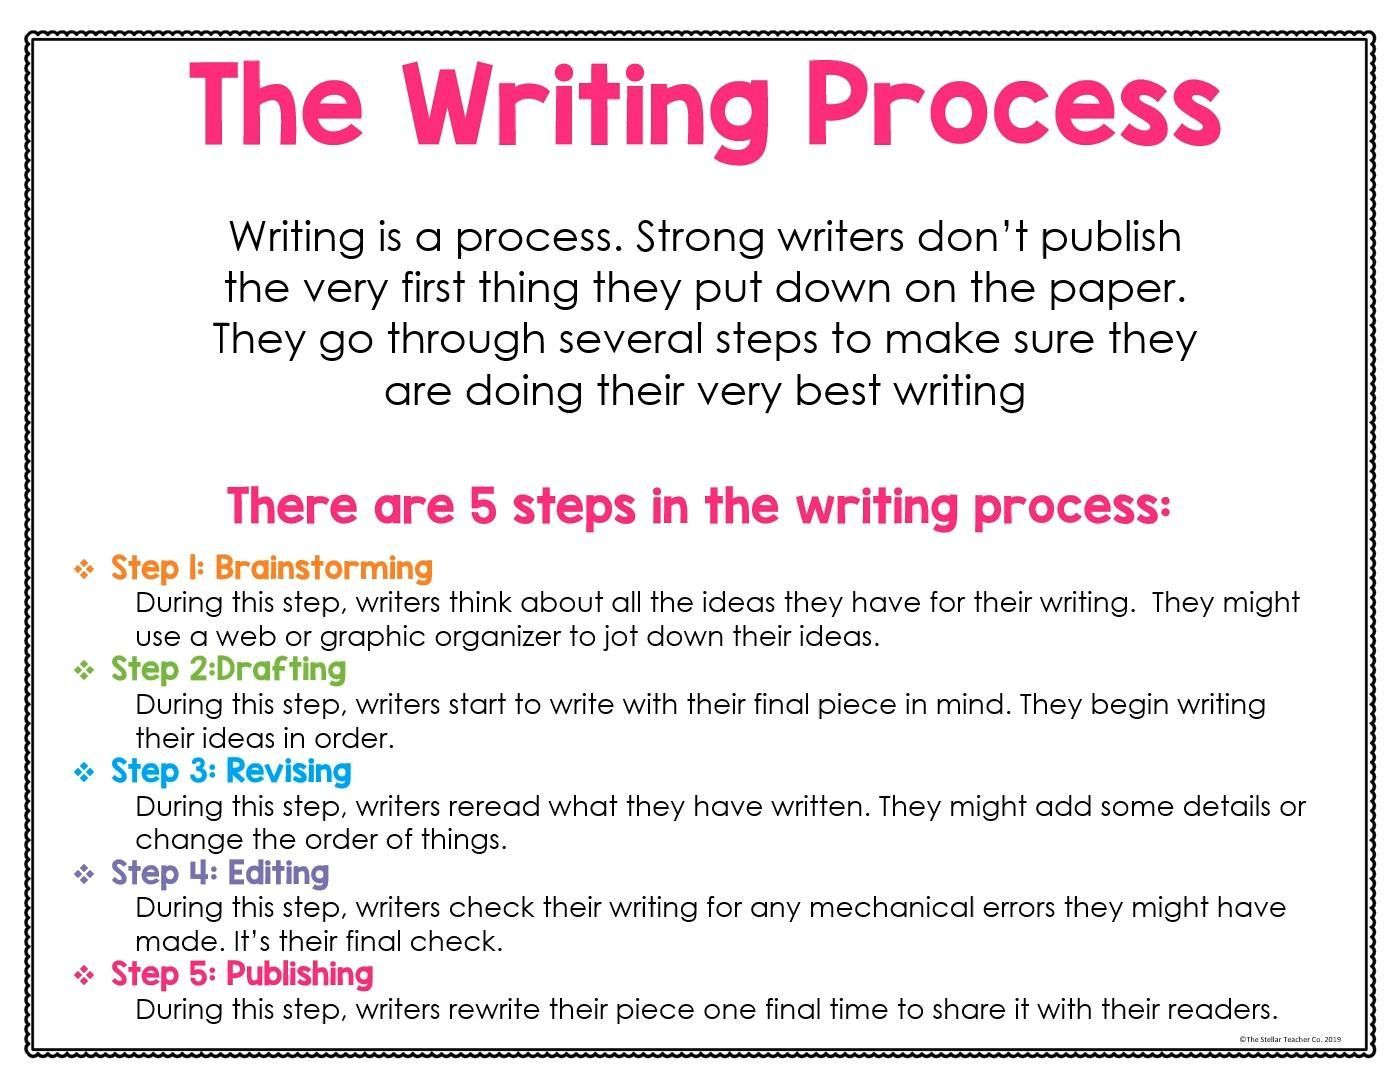 writing process posters and anchor charts for distance learning essay skills book tips Resume Resume Writing Process Steps